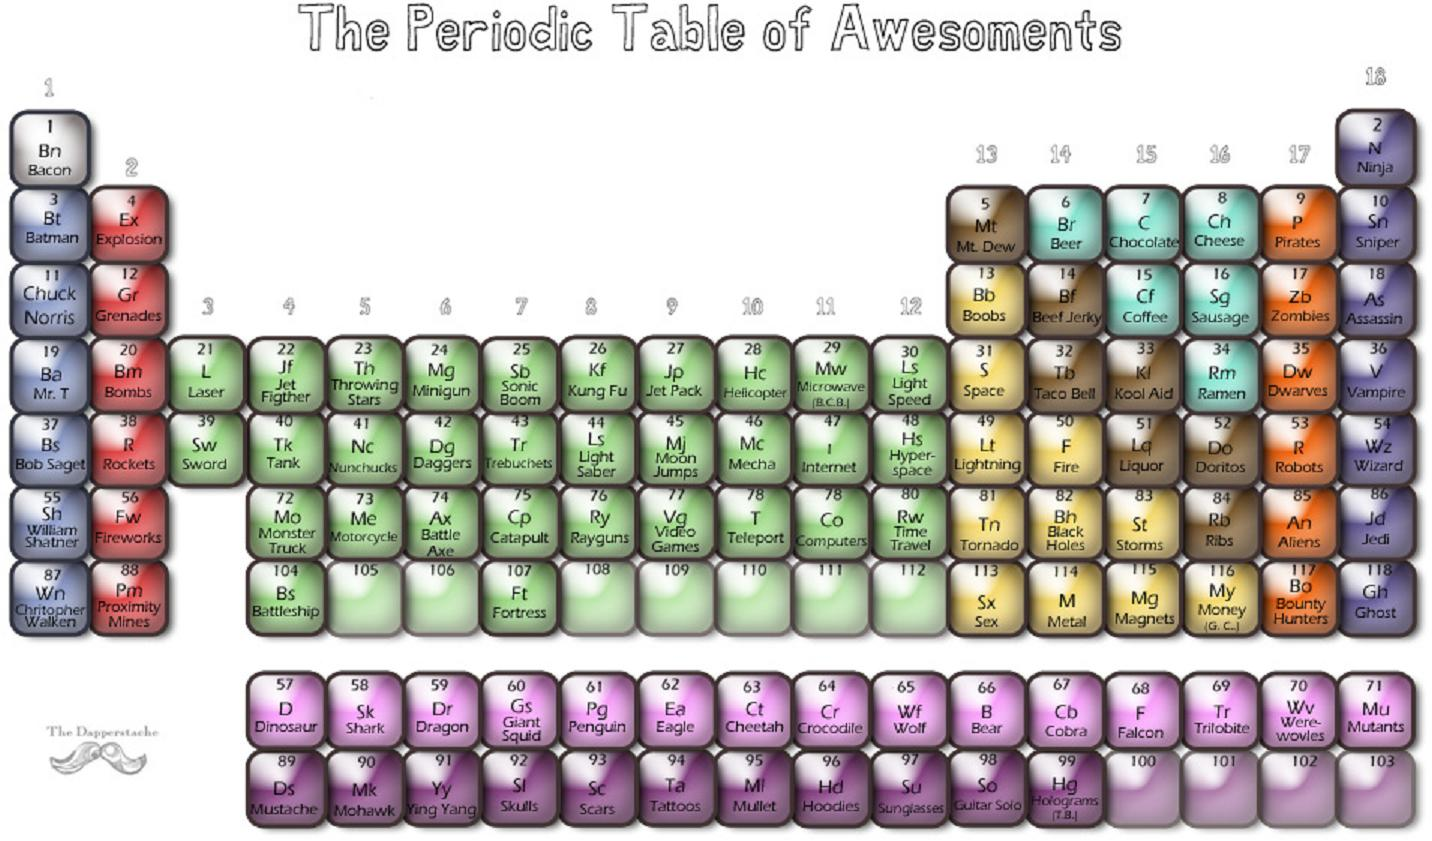 Awesome Elements Periodic Table The Periodic Table of Awesome